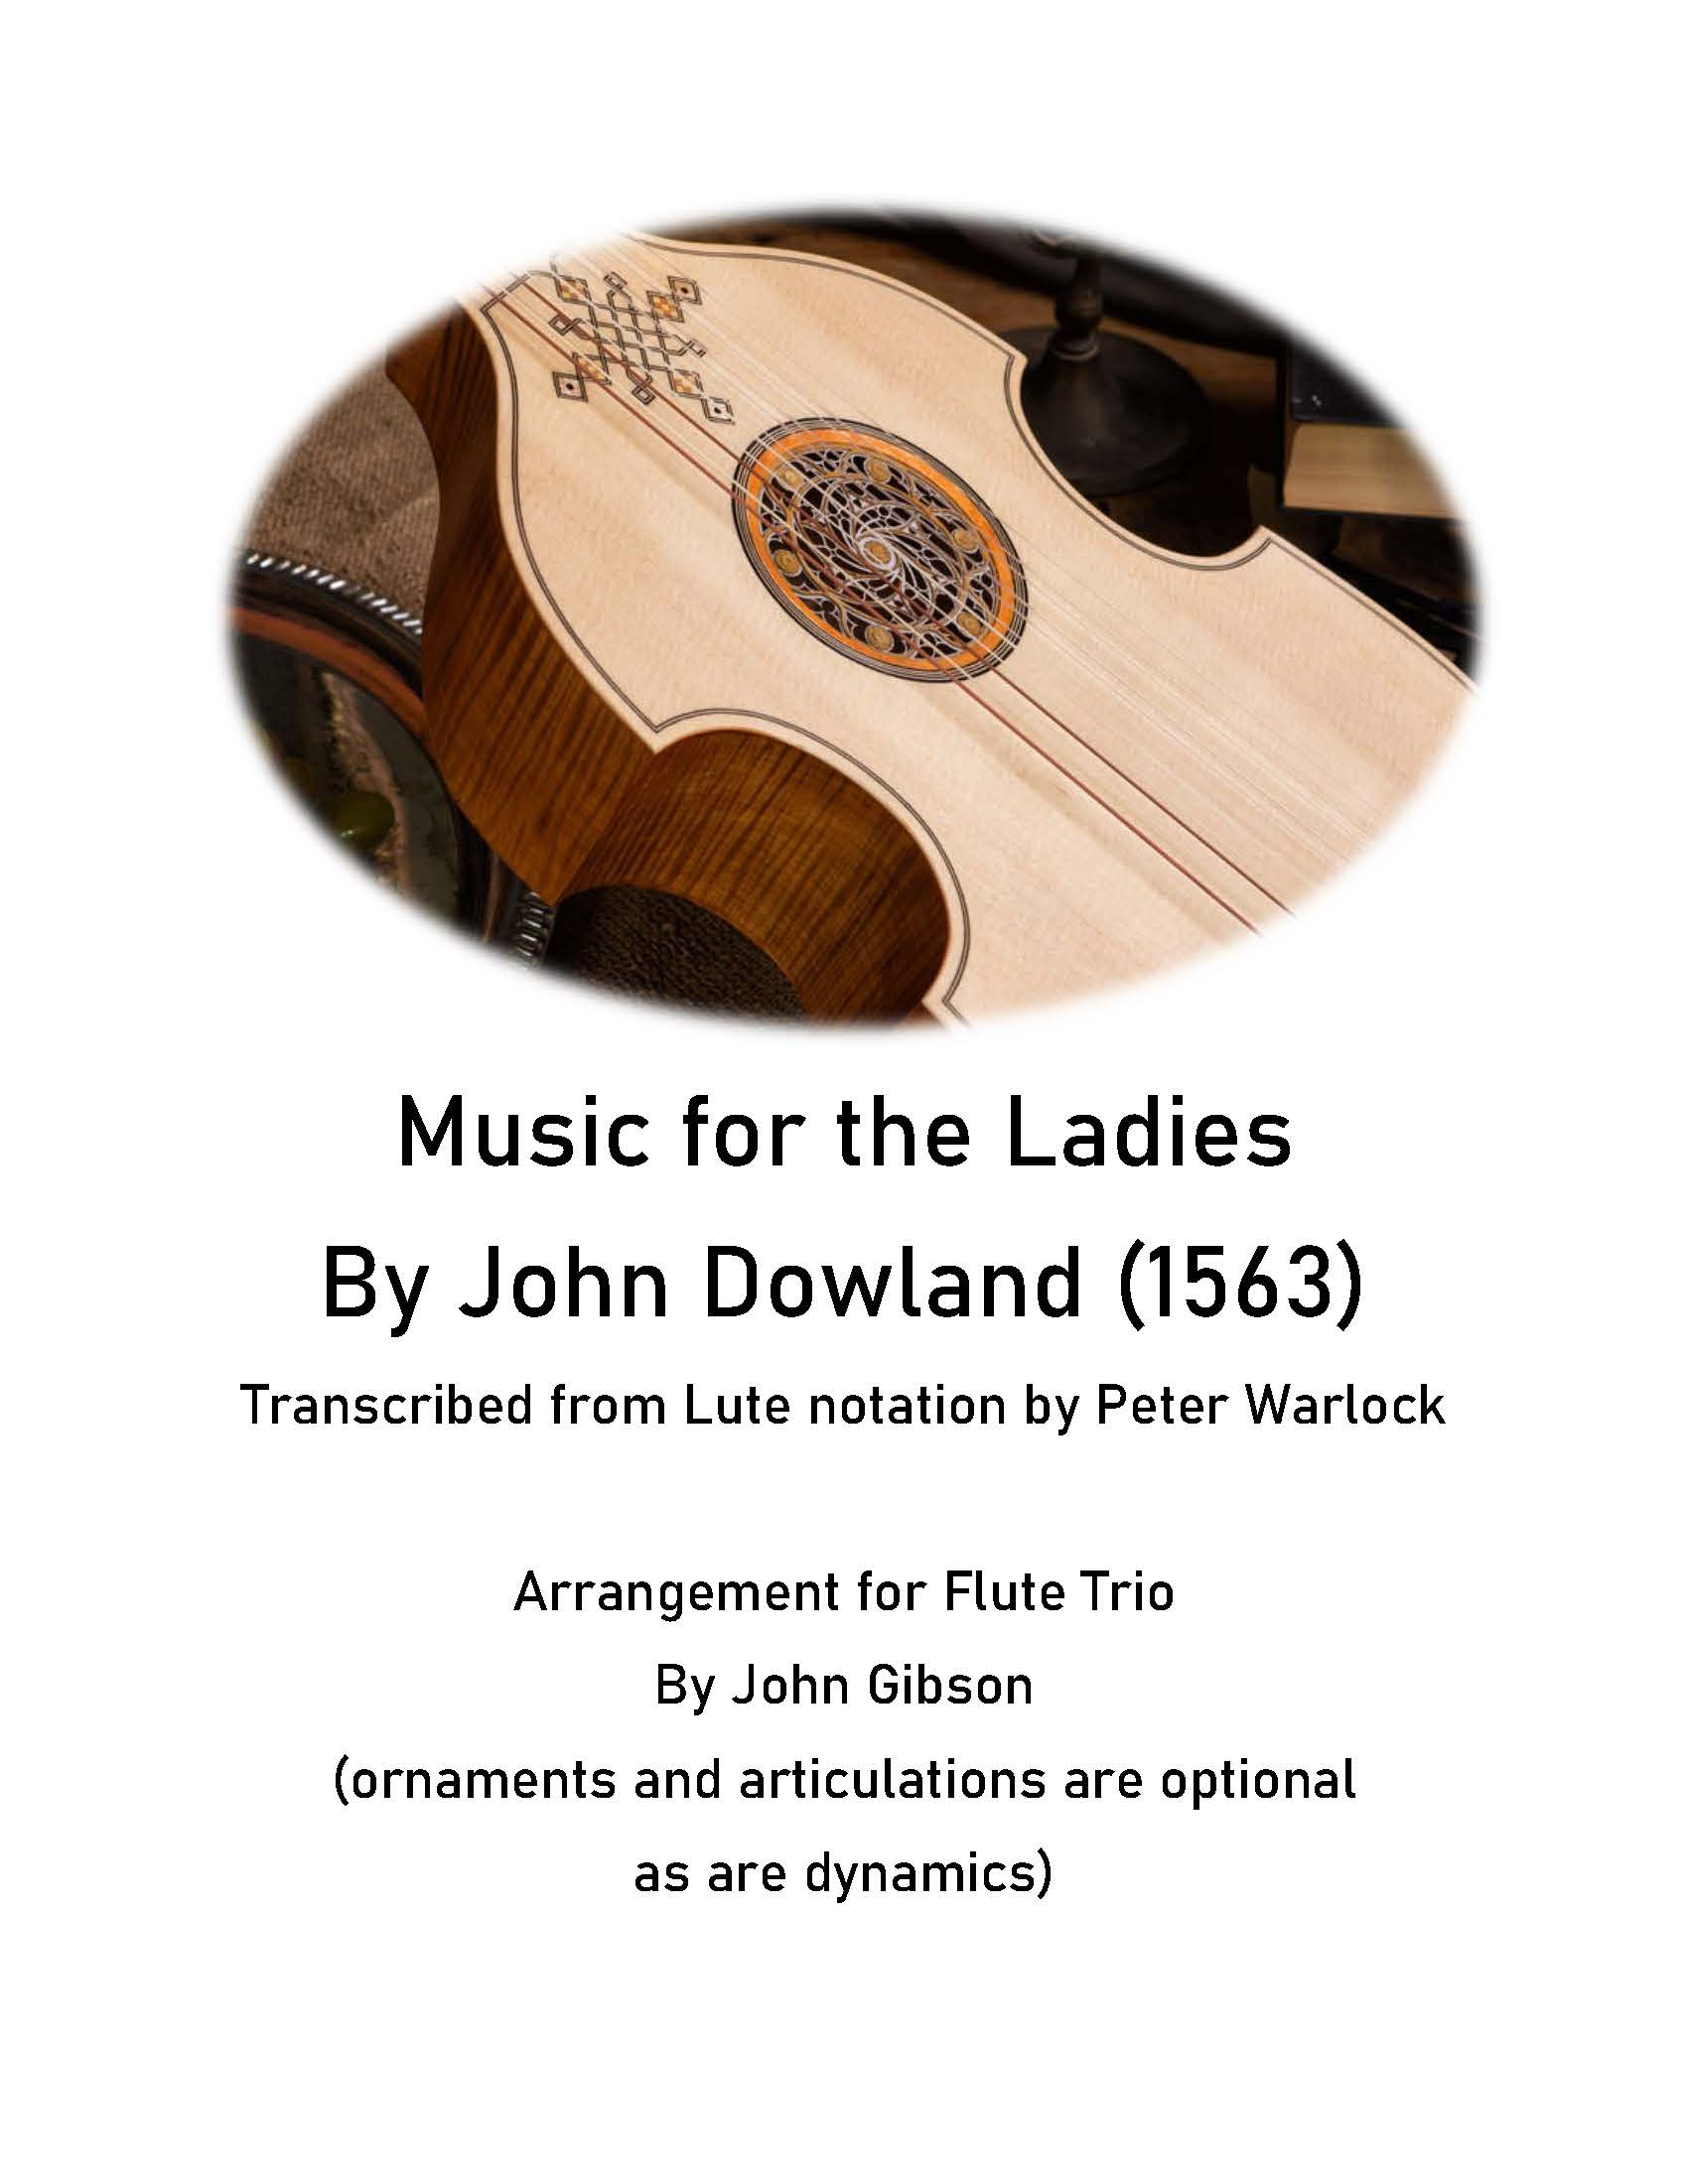 Music for the Ladies fl 3 cover